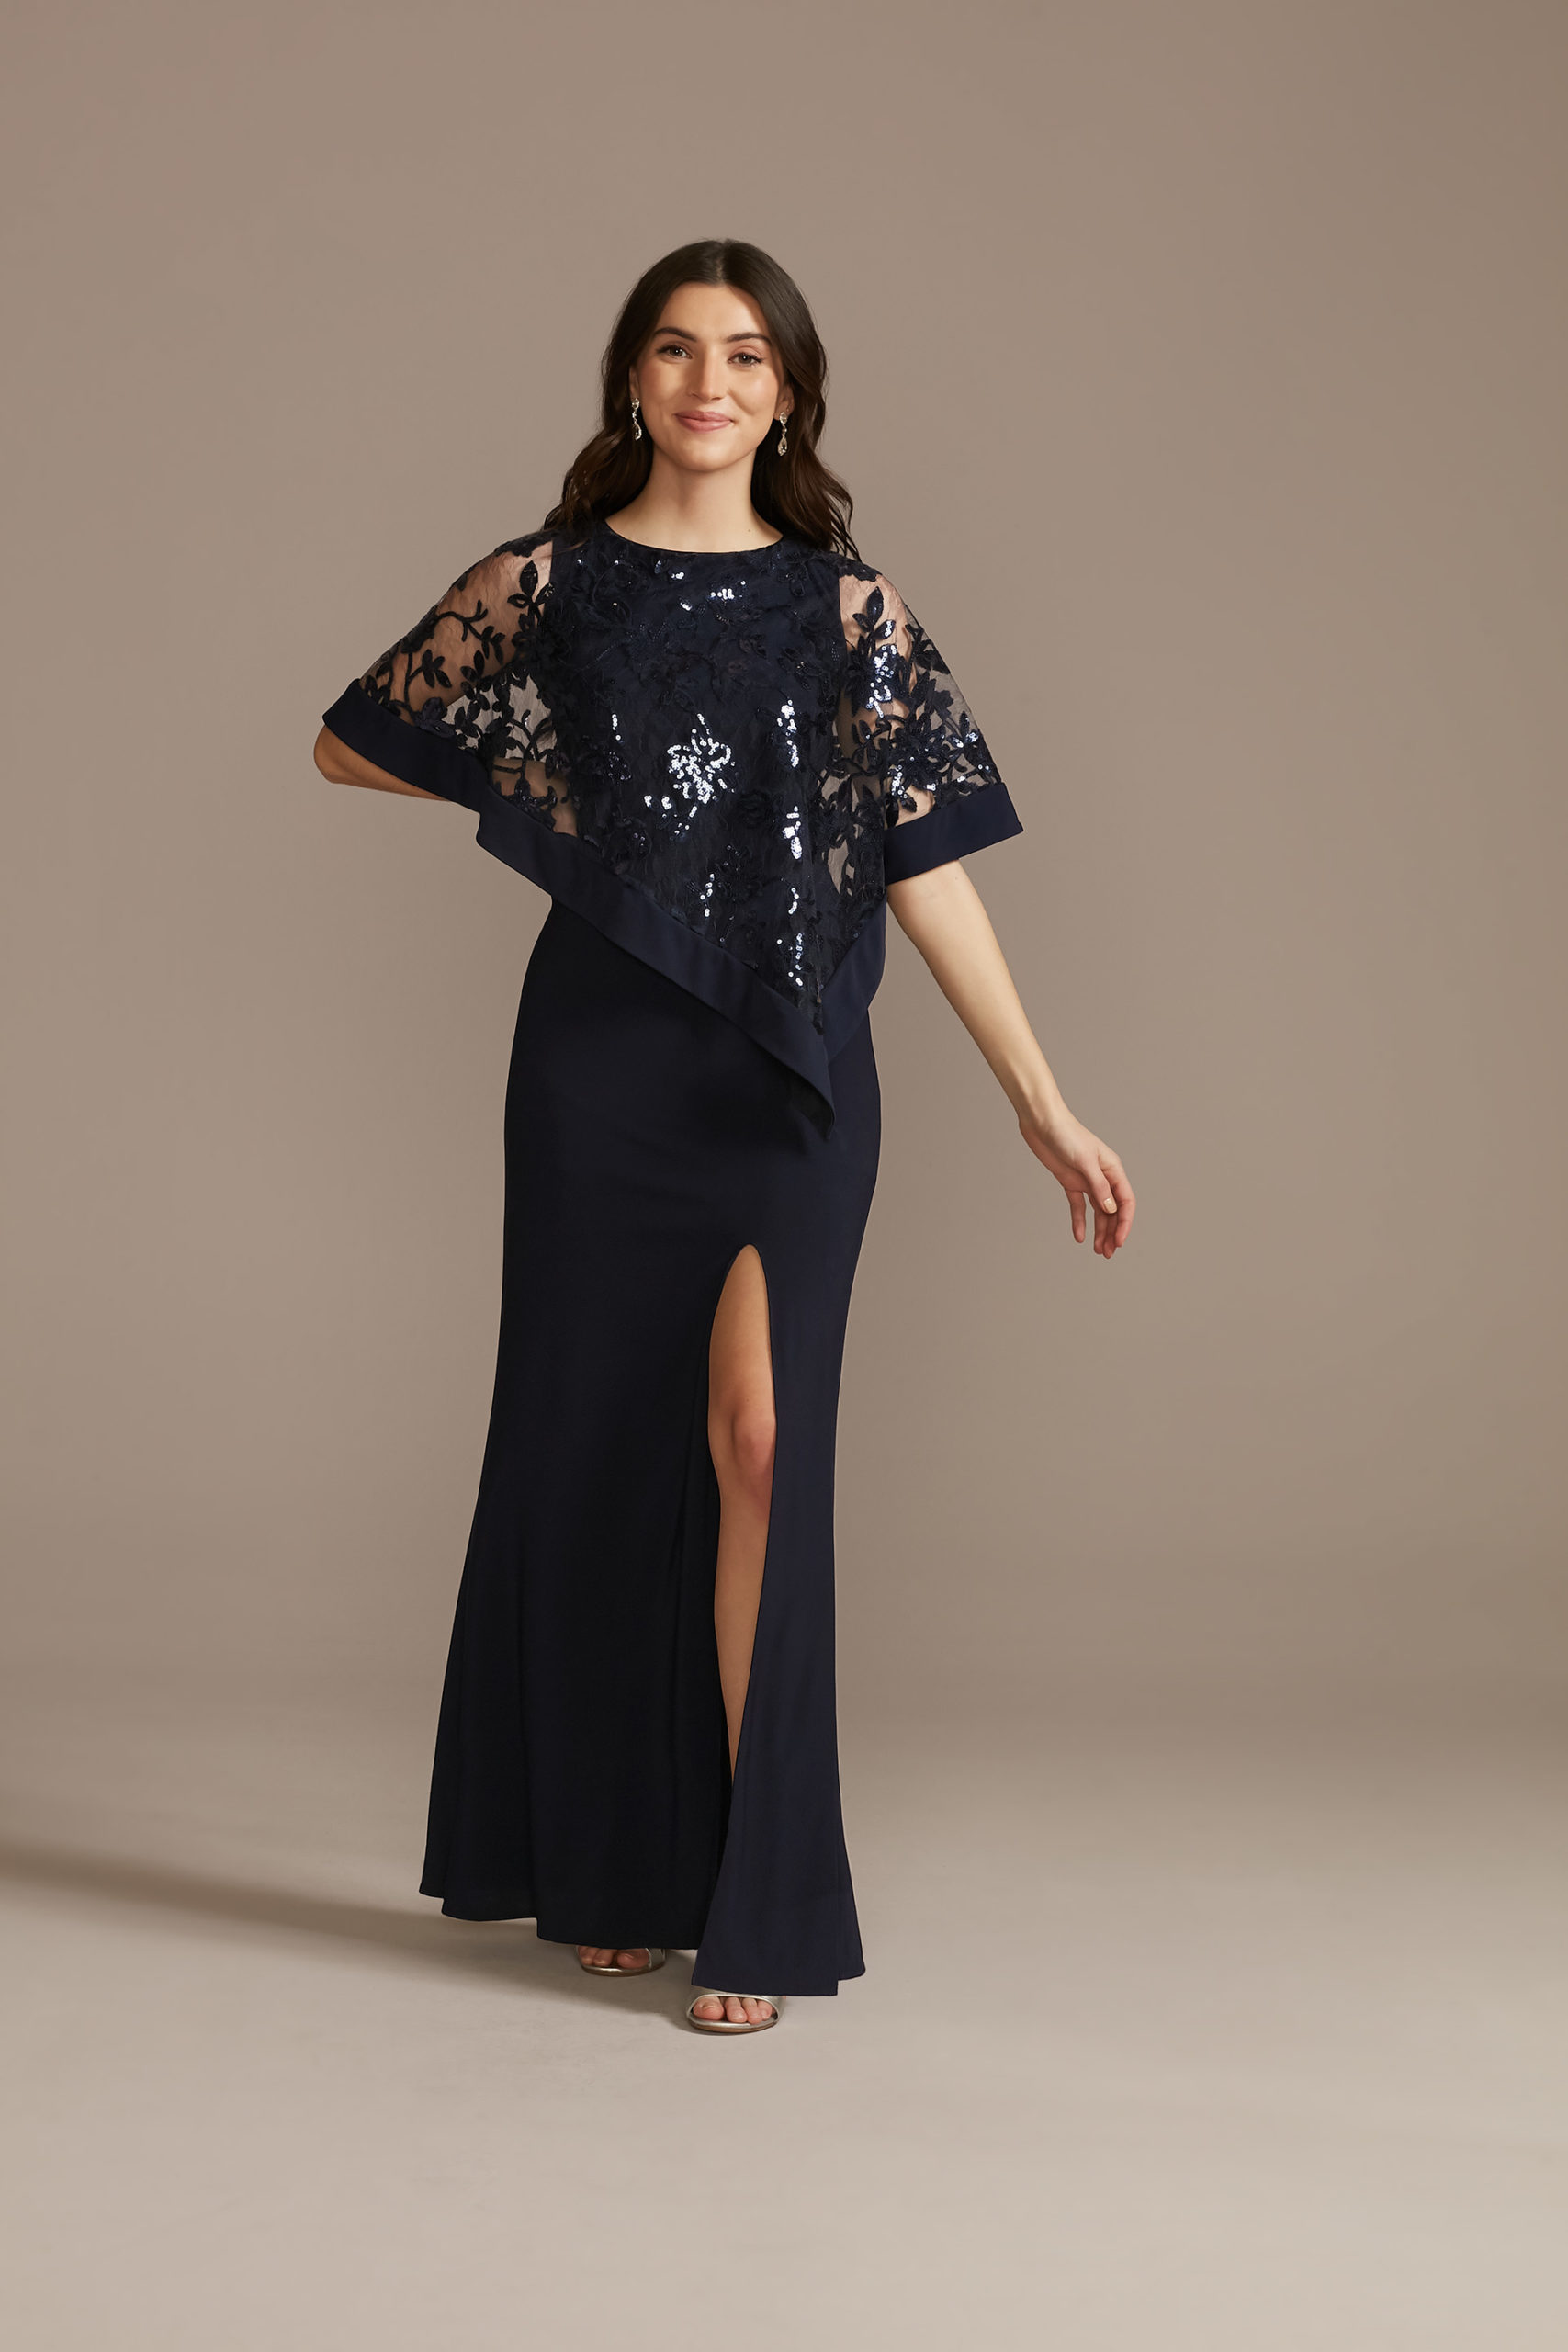 model wearing navy mother of the bride sheath dress with a sequin floral capelet